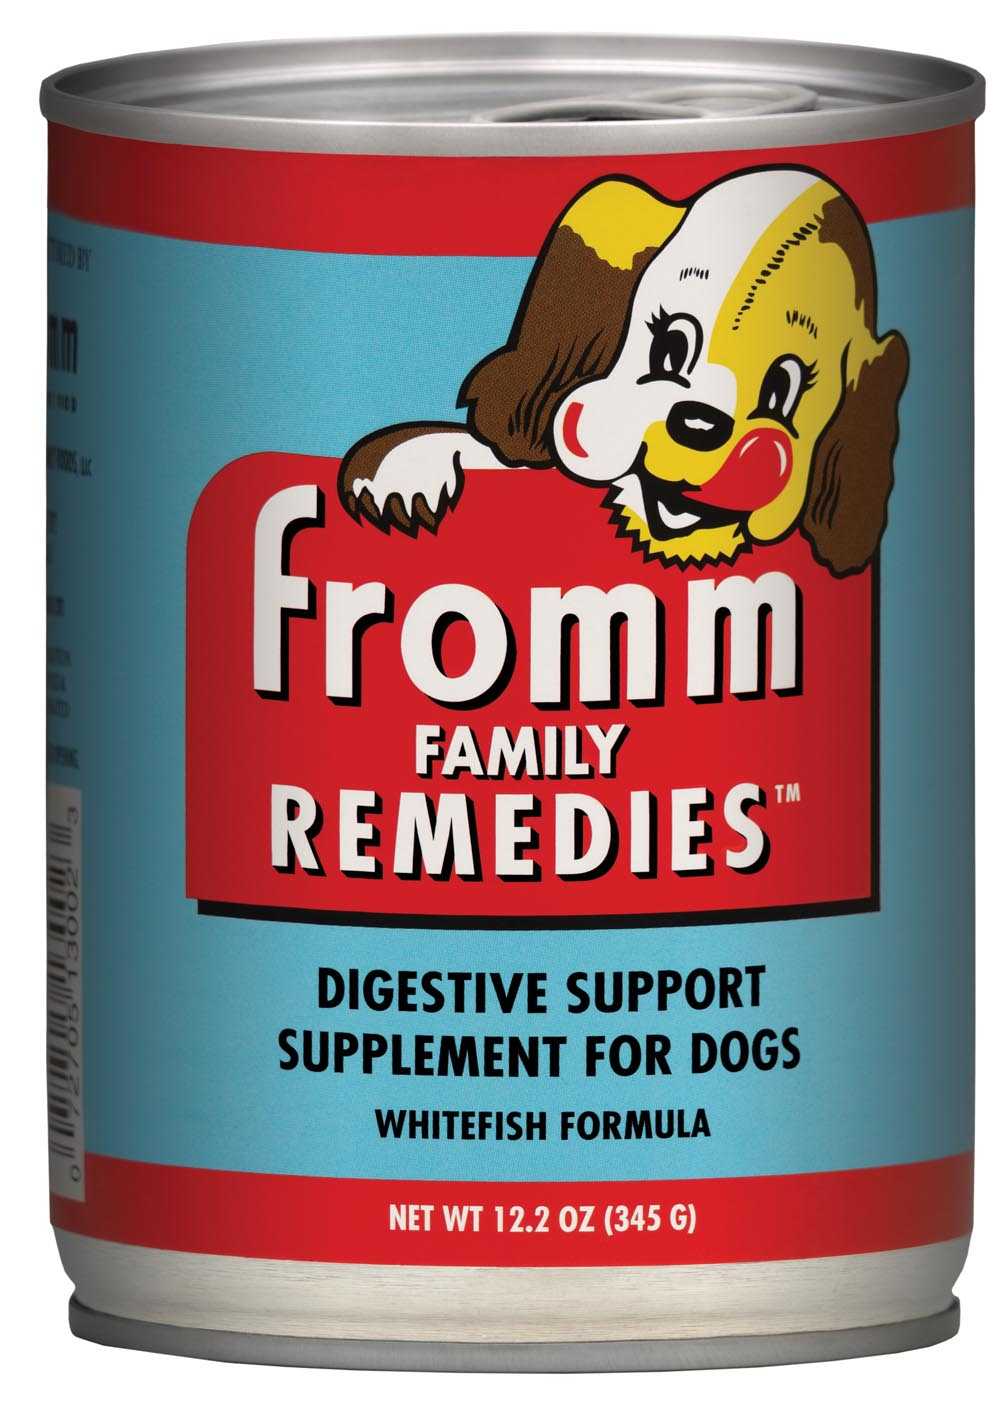 Fromm Family Remedies Whitefish Recipe Digestive Support Canned Dog Food, 12.2-oz